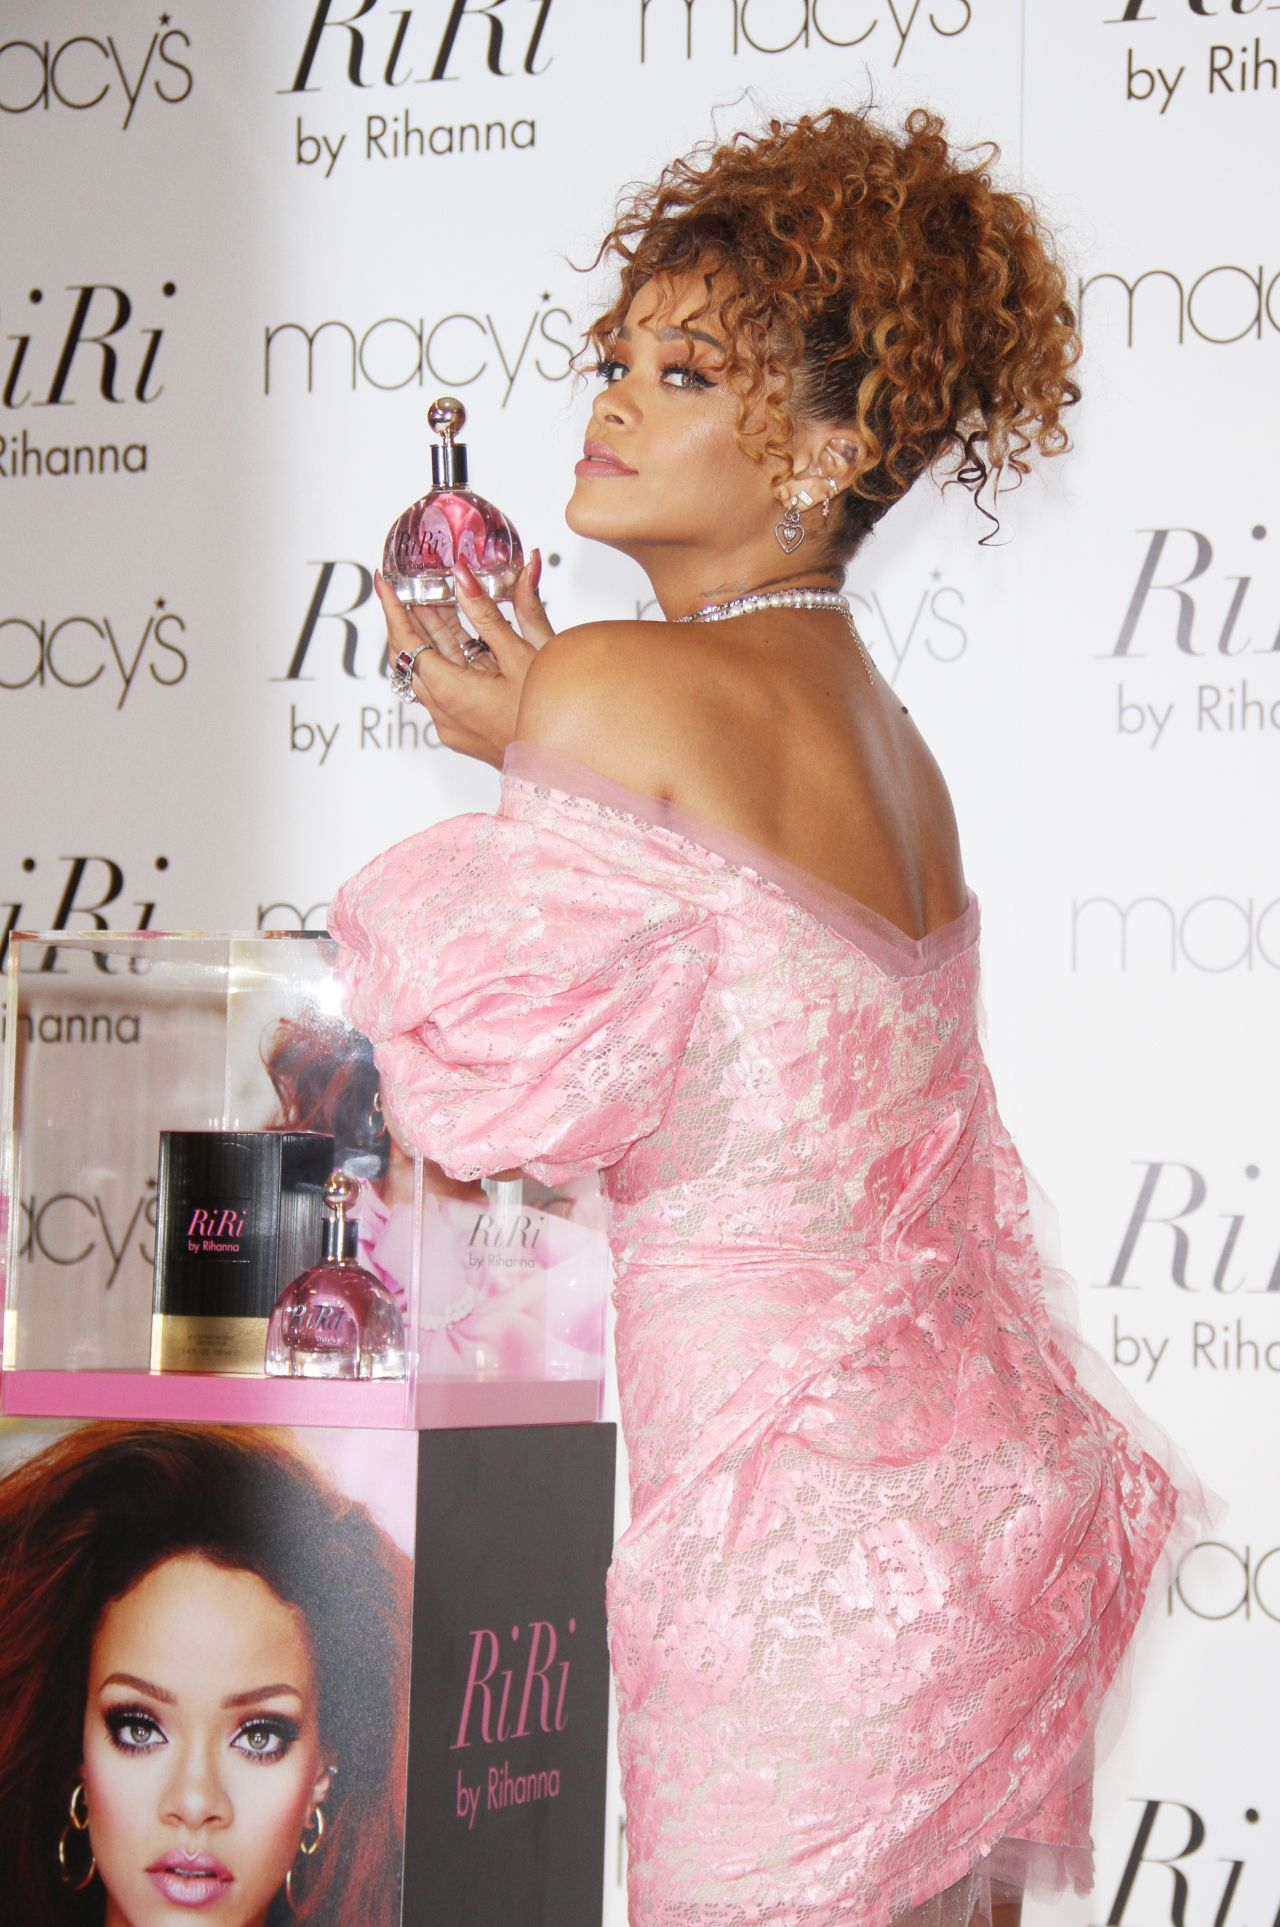 rihanna-in-vivienne-westwood-red-label-riri-by-rihanna-fragrance-unveiling